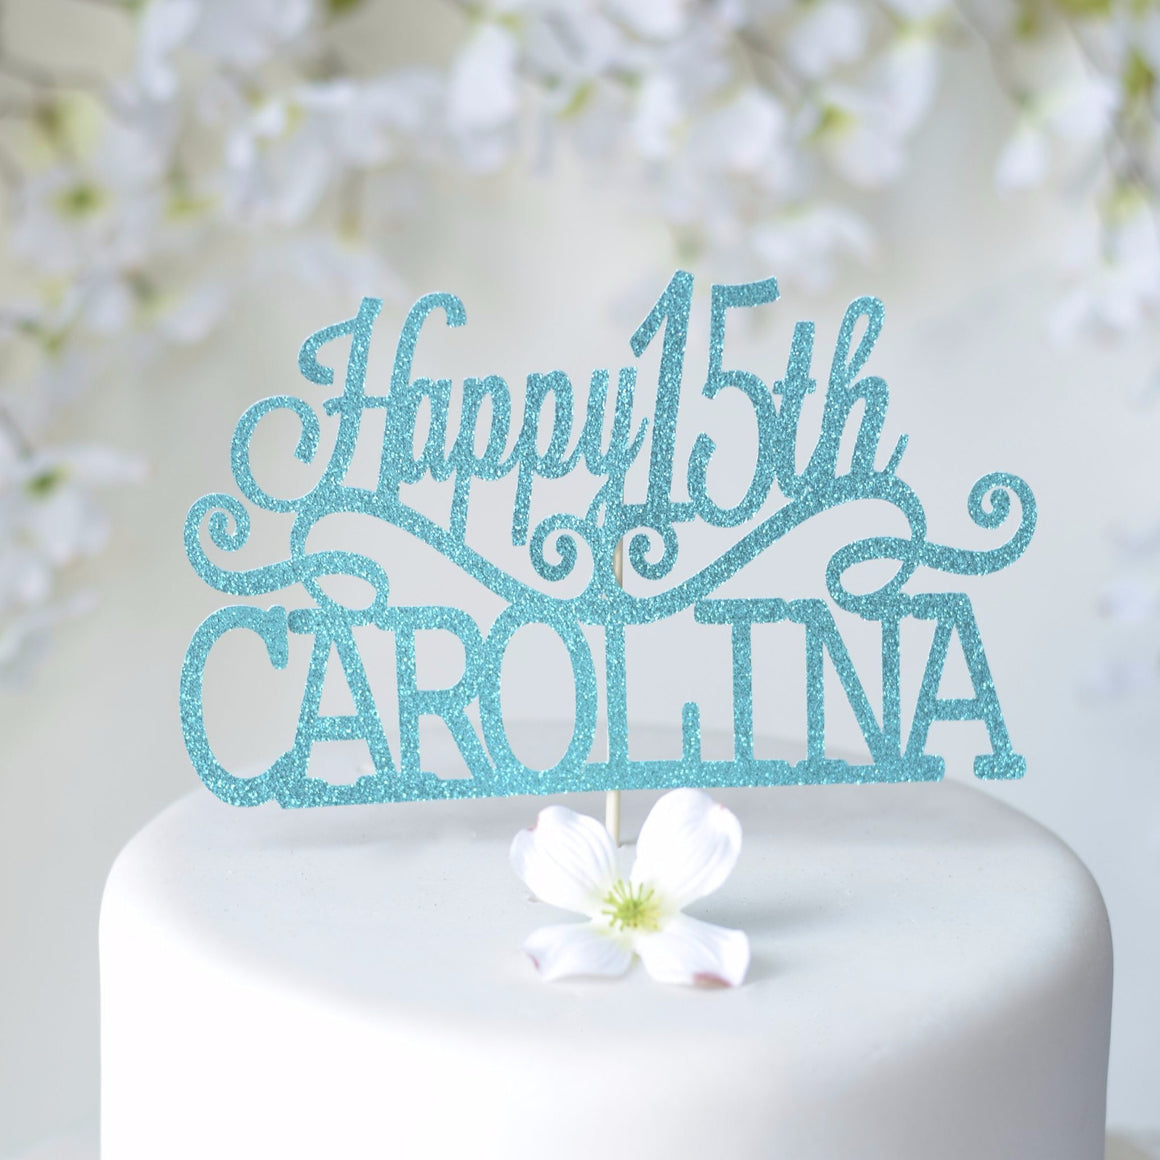 Happy 15th Carolina blue sparkle glitter cake topper